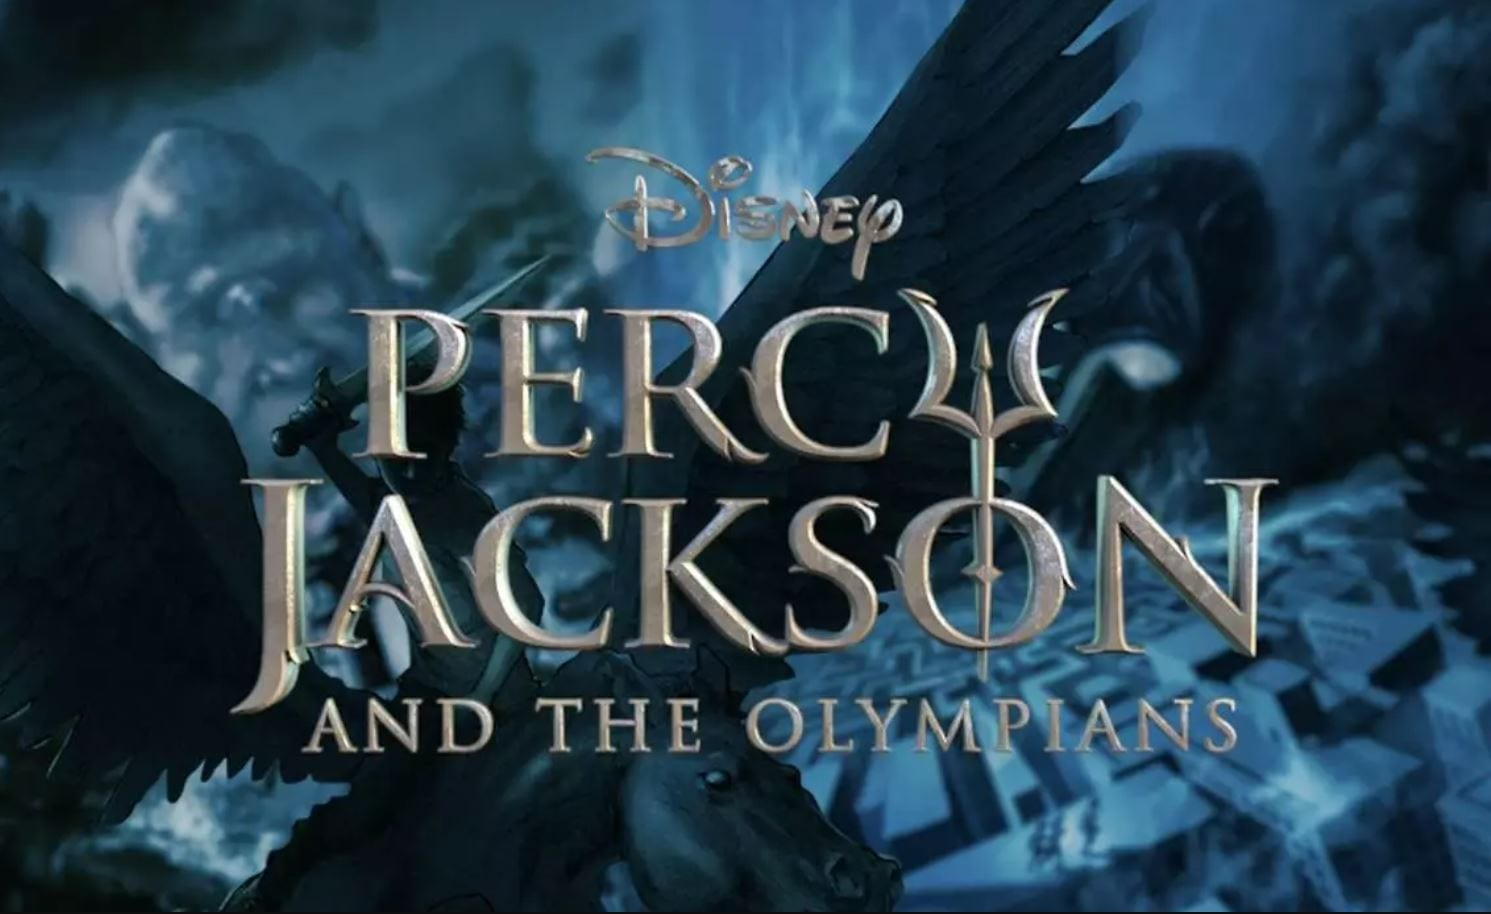 Percy Jackson Disney Plus TV Series: New Updates